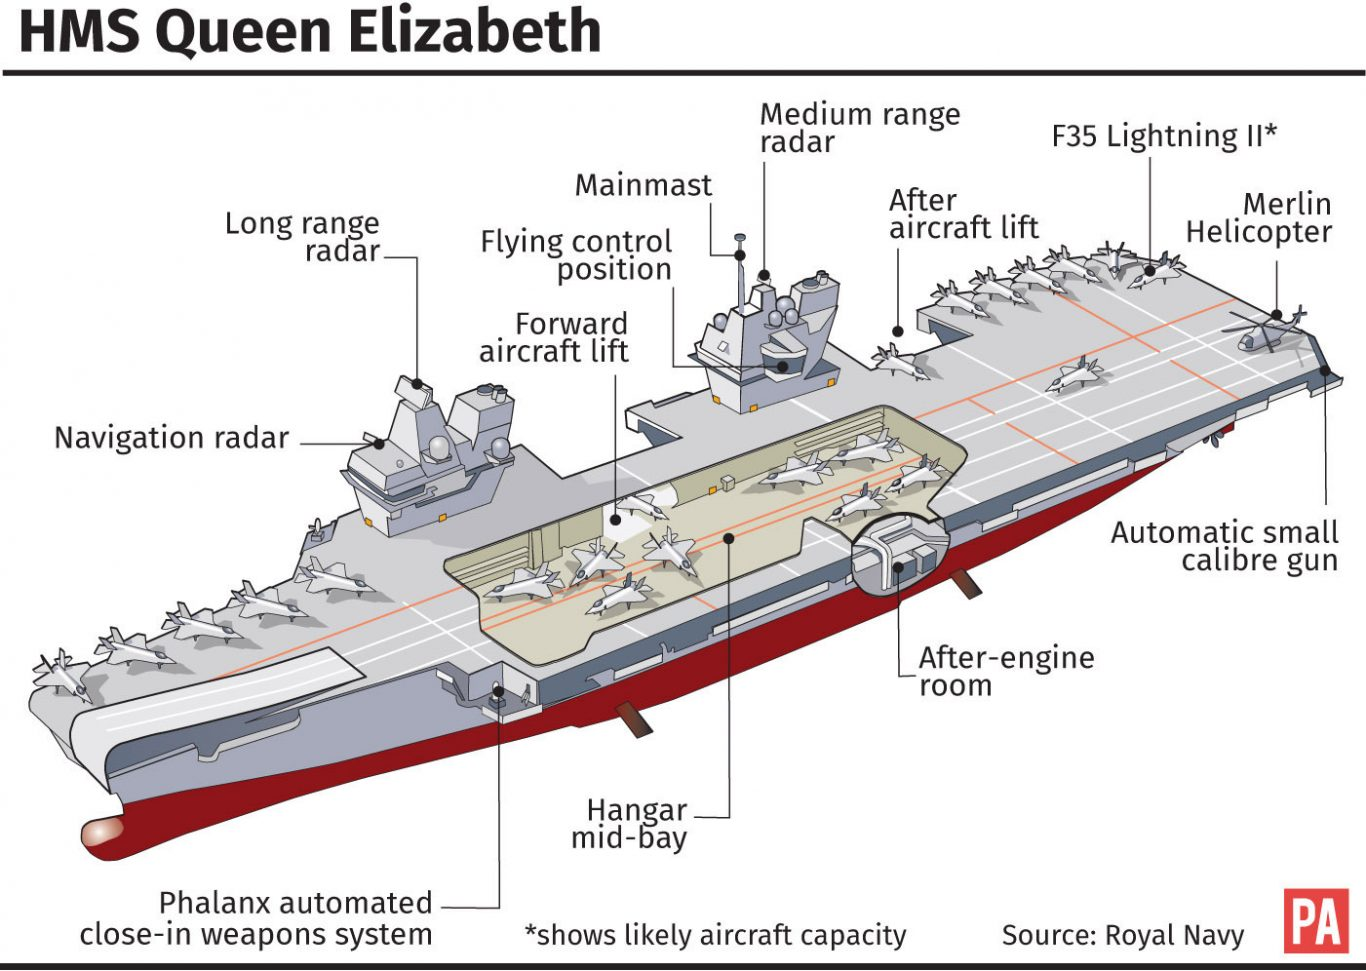 Cutaway drawing of HMS Queen Elizabeth (PA Graphics)